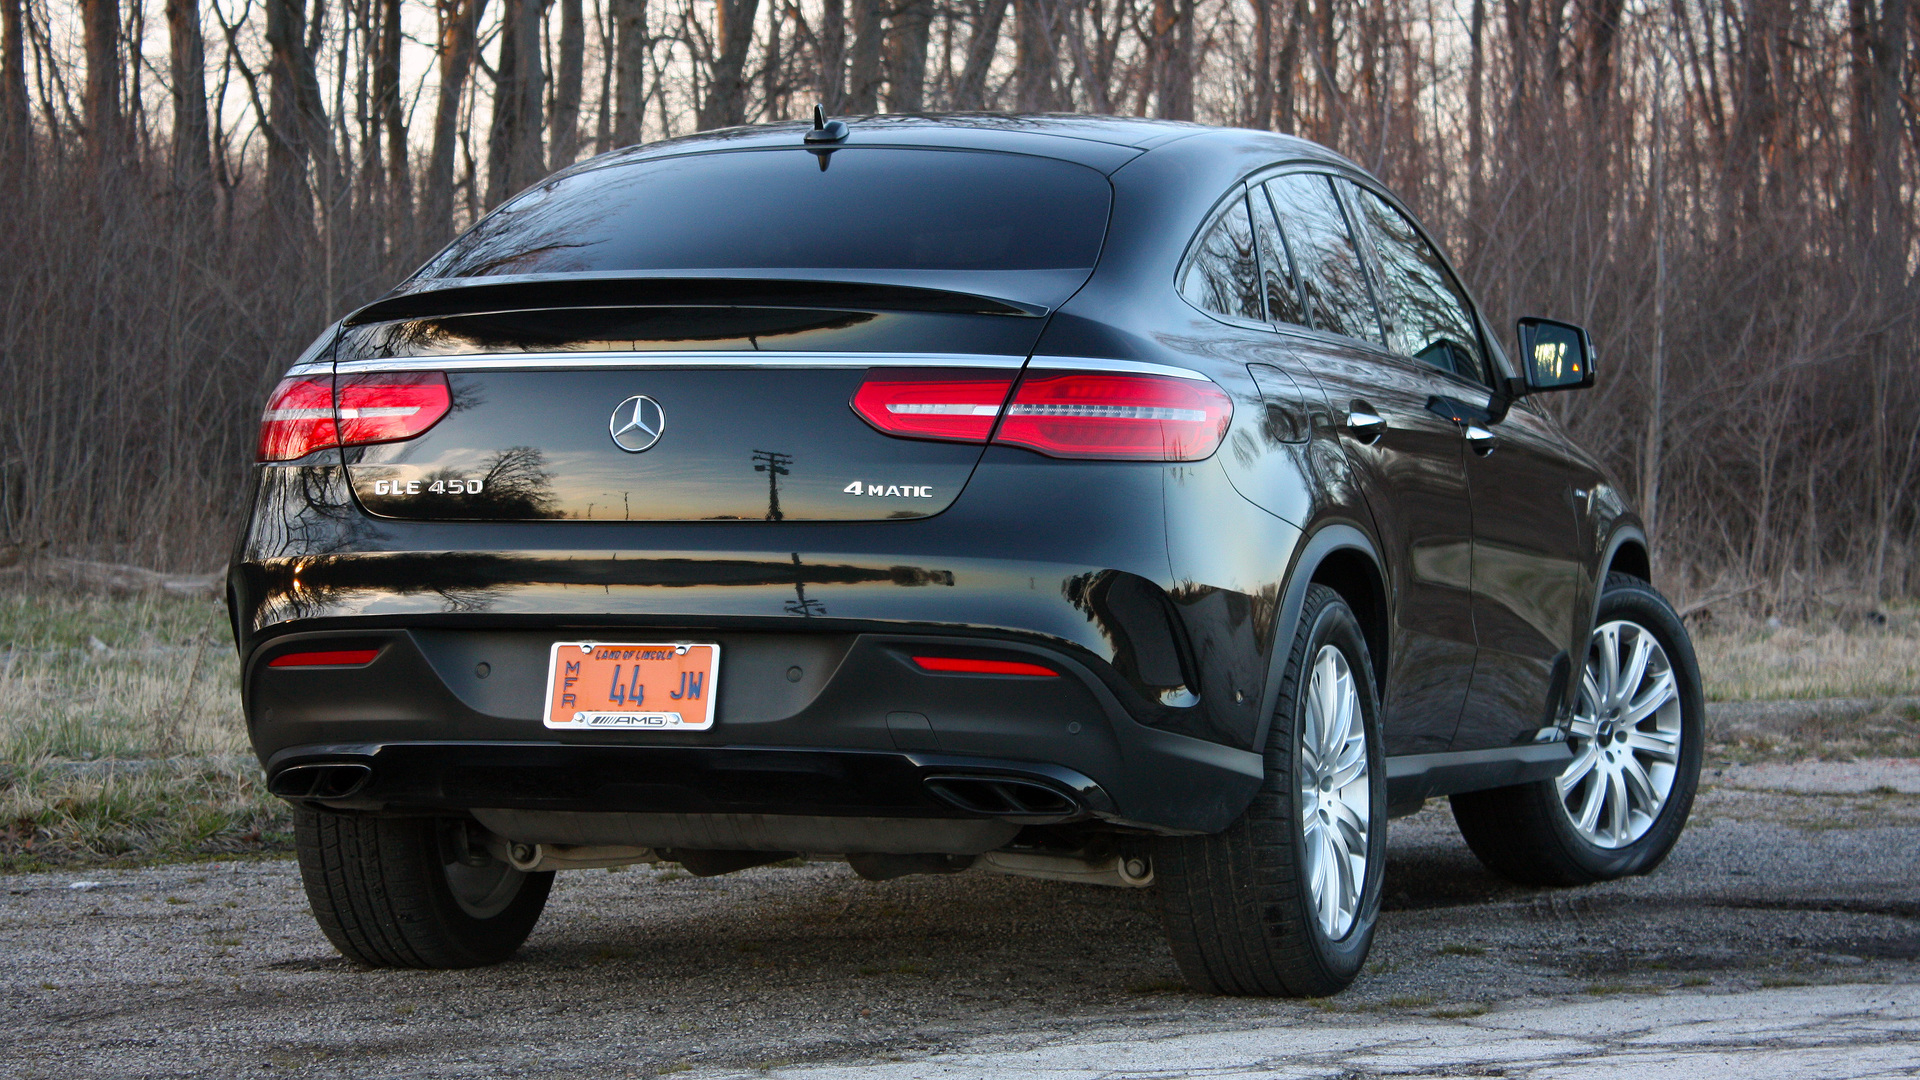 https://icdn-7.motor1.com/images/mgl/2Y3k4/s1/2016-mercedes-benz-gle450-amg-coupe.jpg